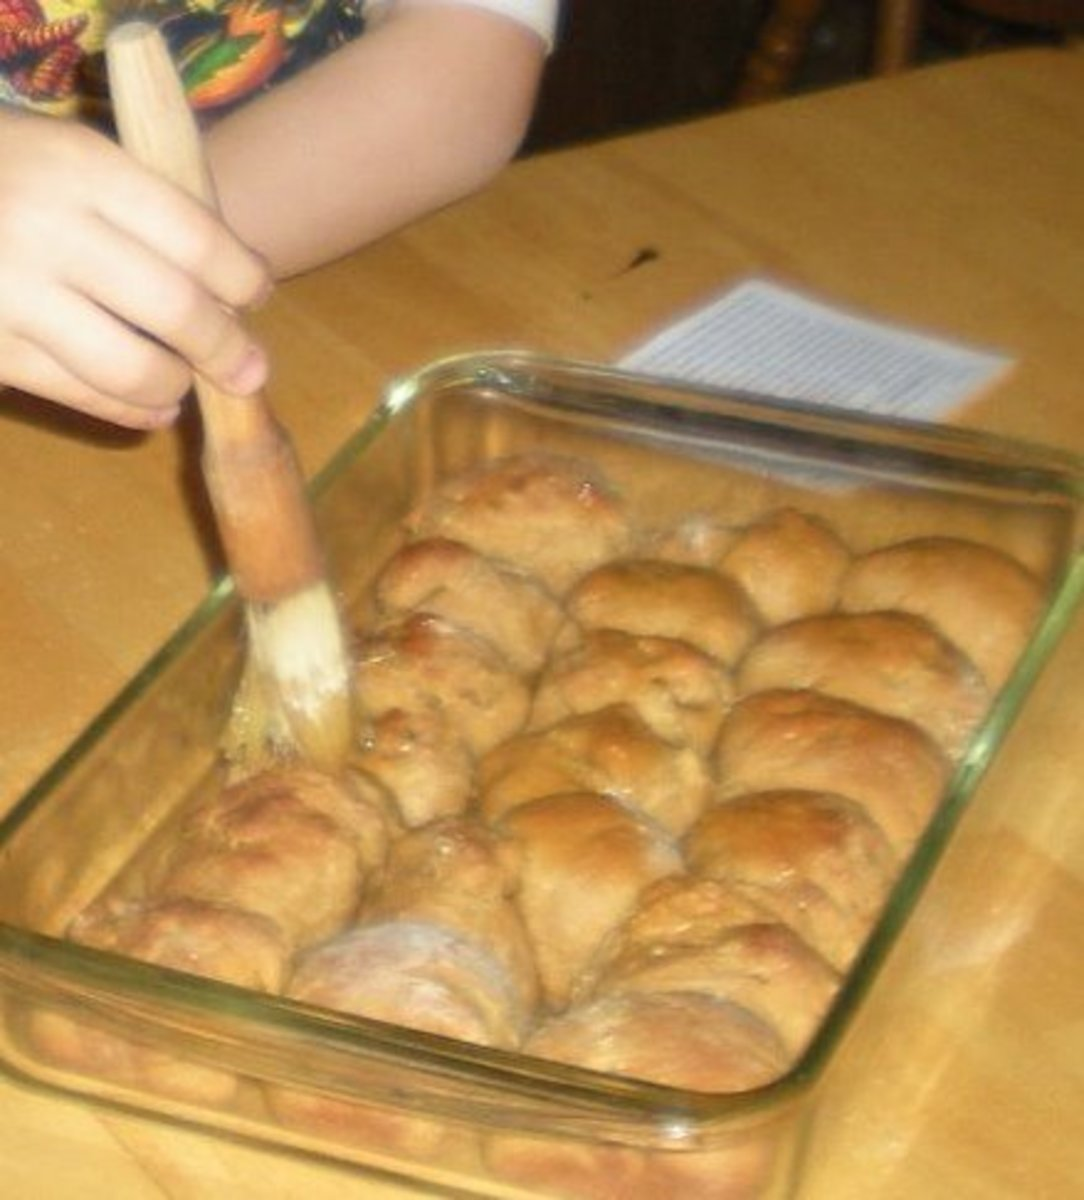 Buttering the cornmeal molasses rolls